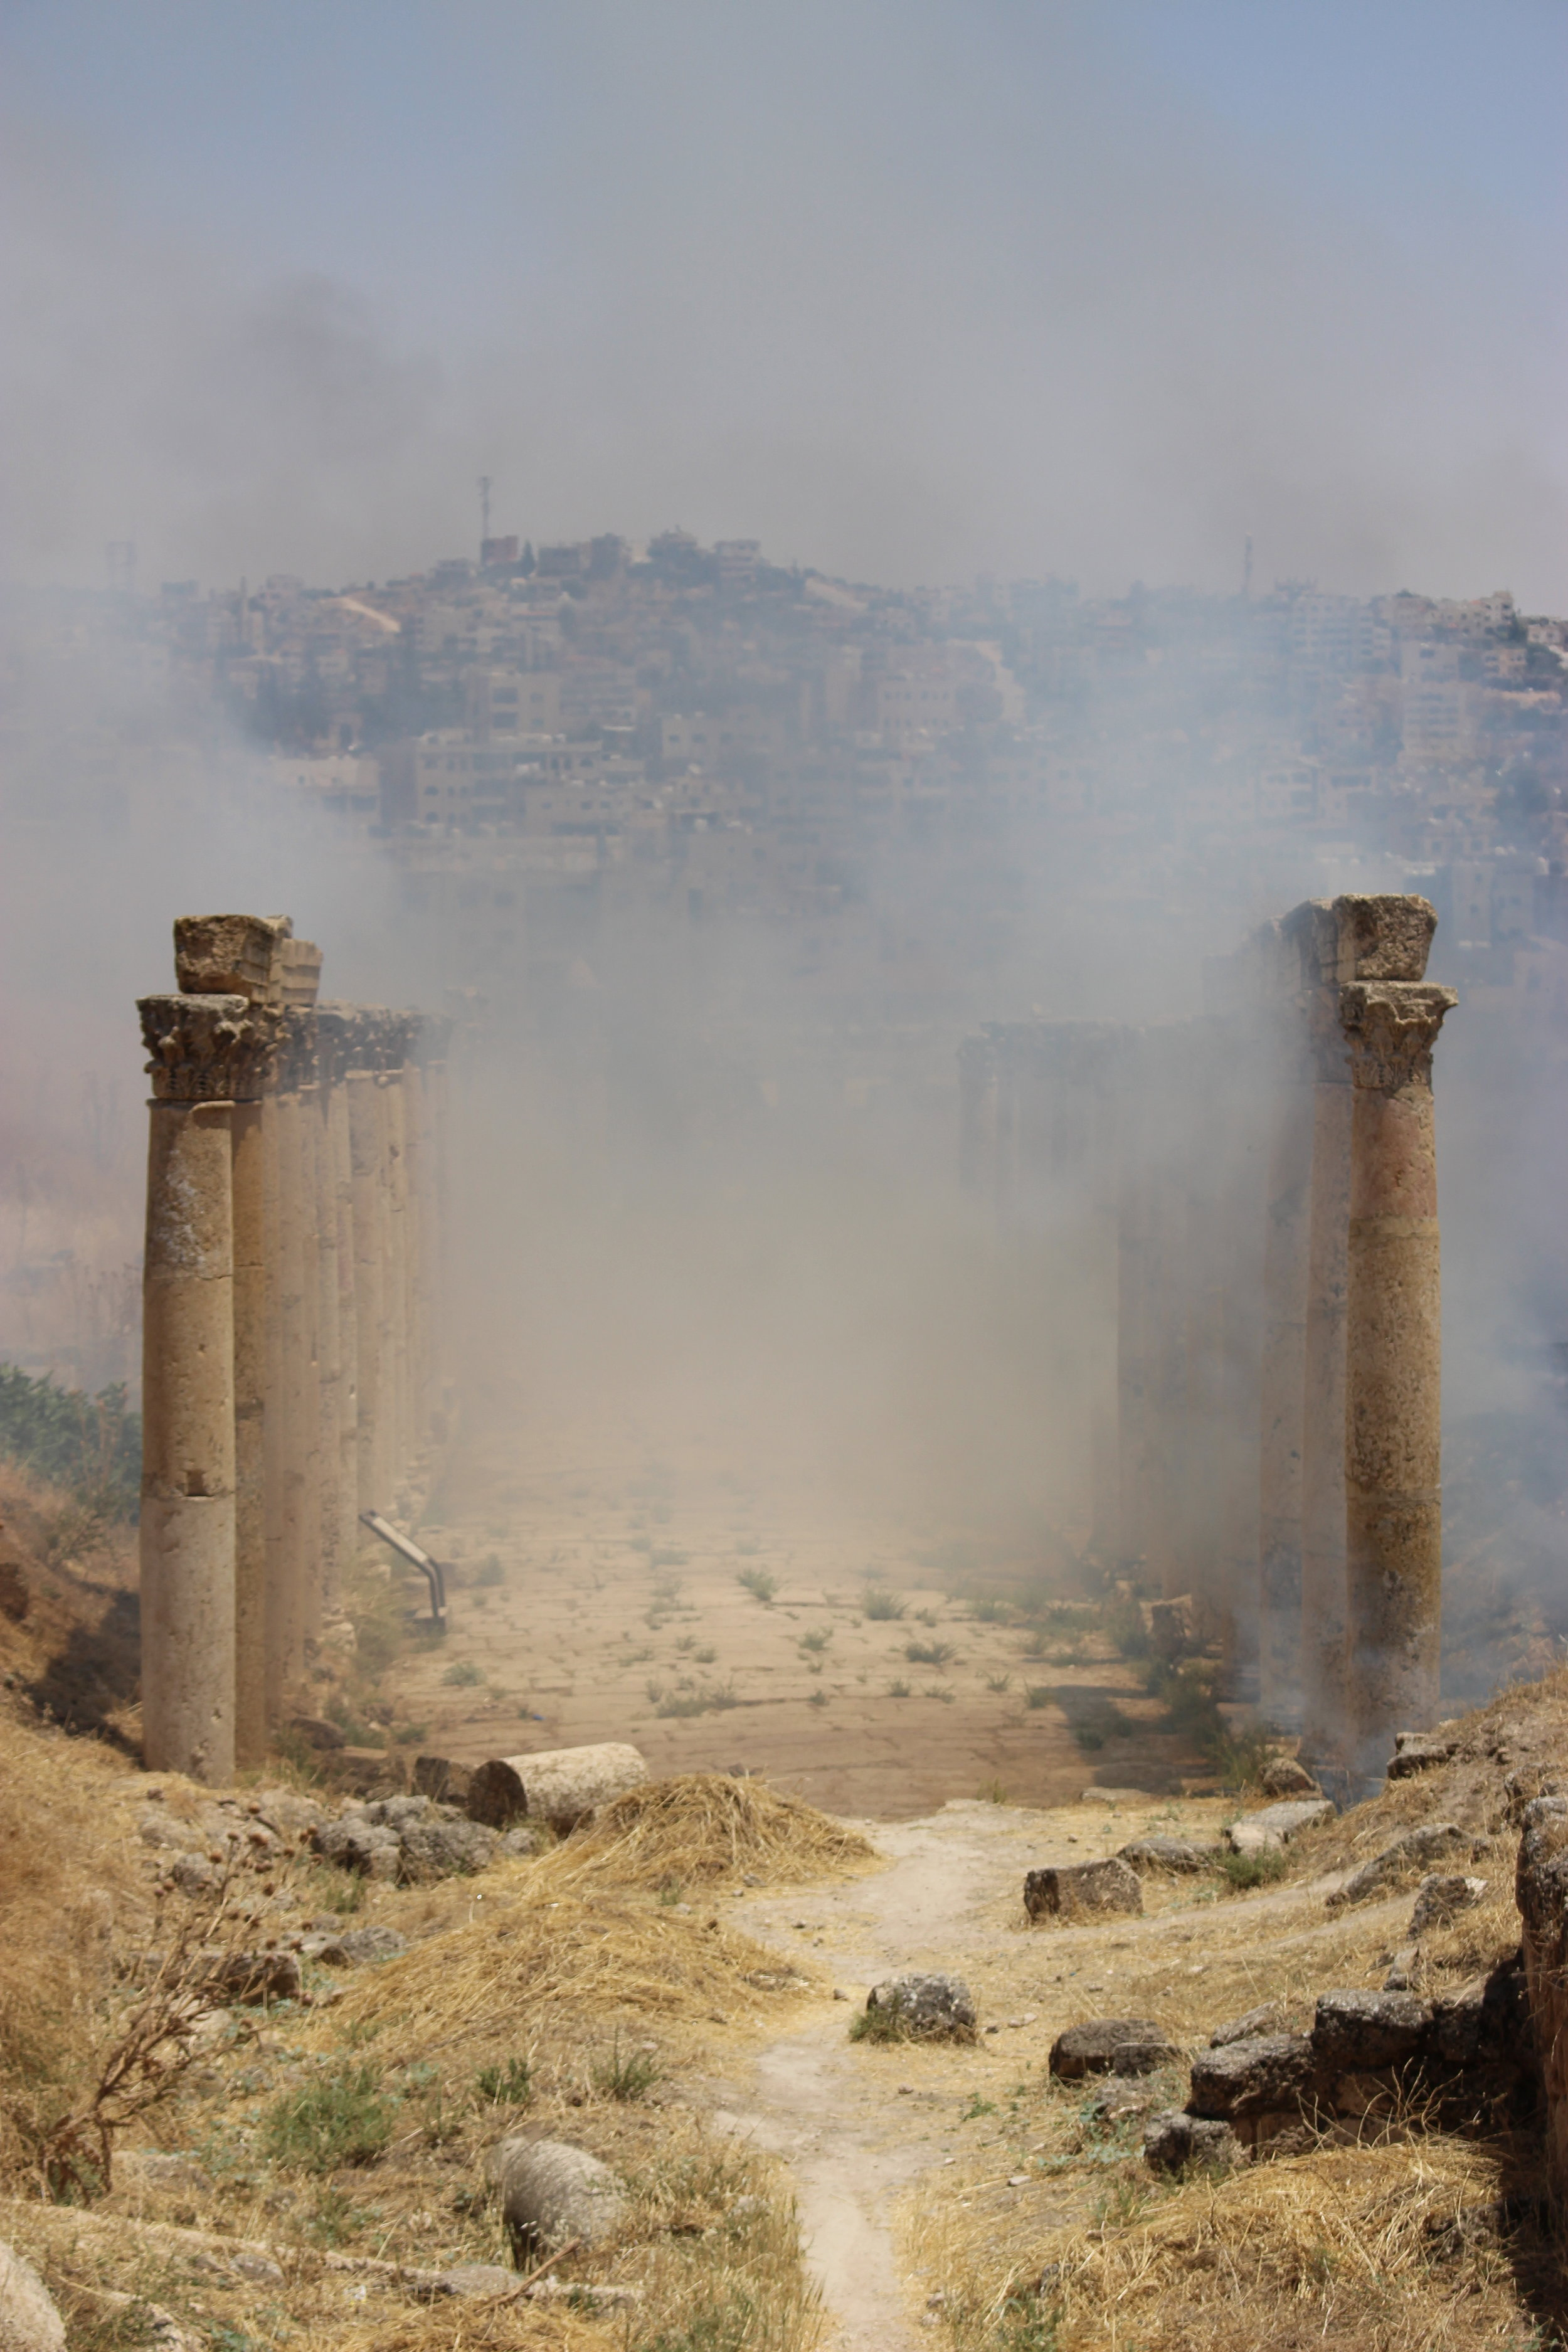 From a distance, the crackling of flames announced billowing columns of smoke. The plumes issued from Jerash's Decamanus, the old east-west Roman road. Photo credit: Jessen, 2019